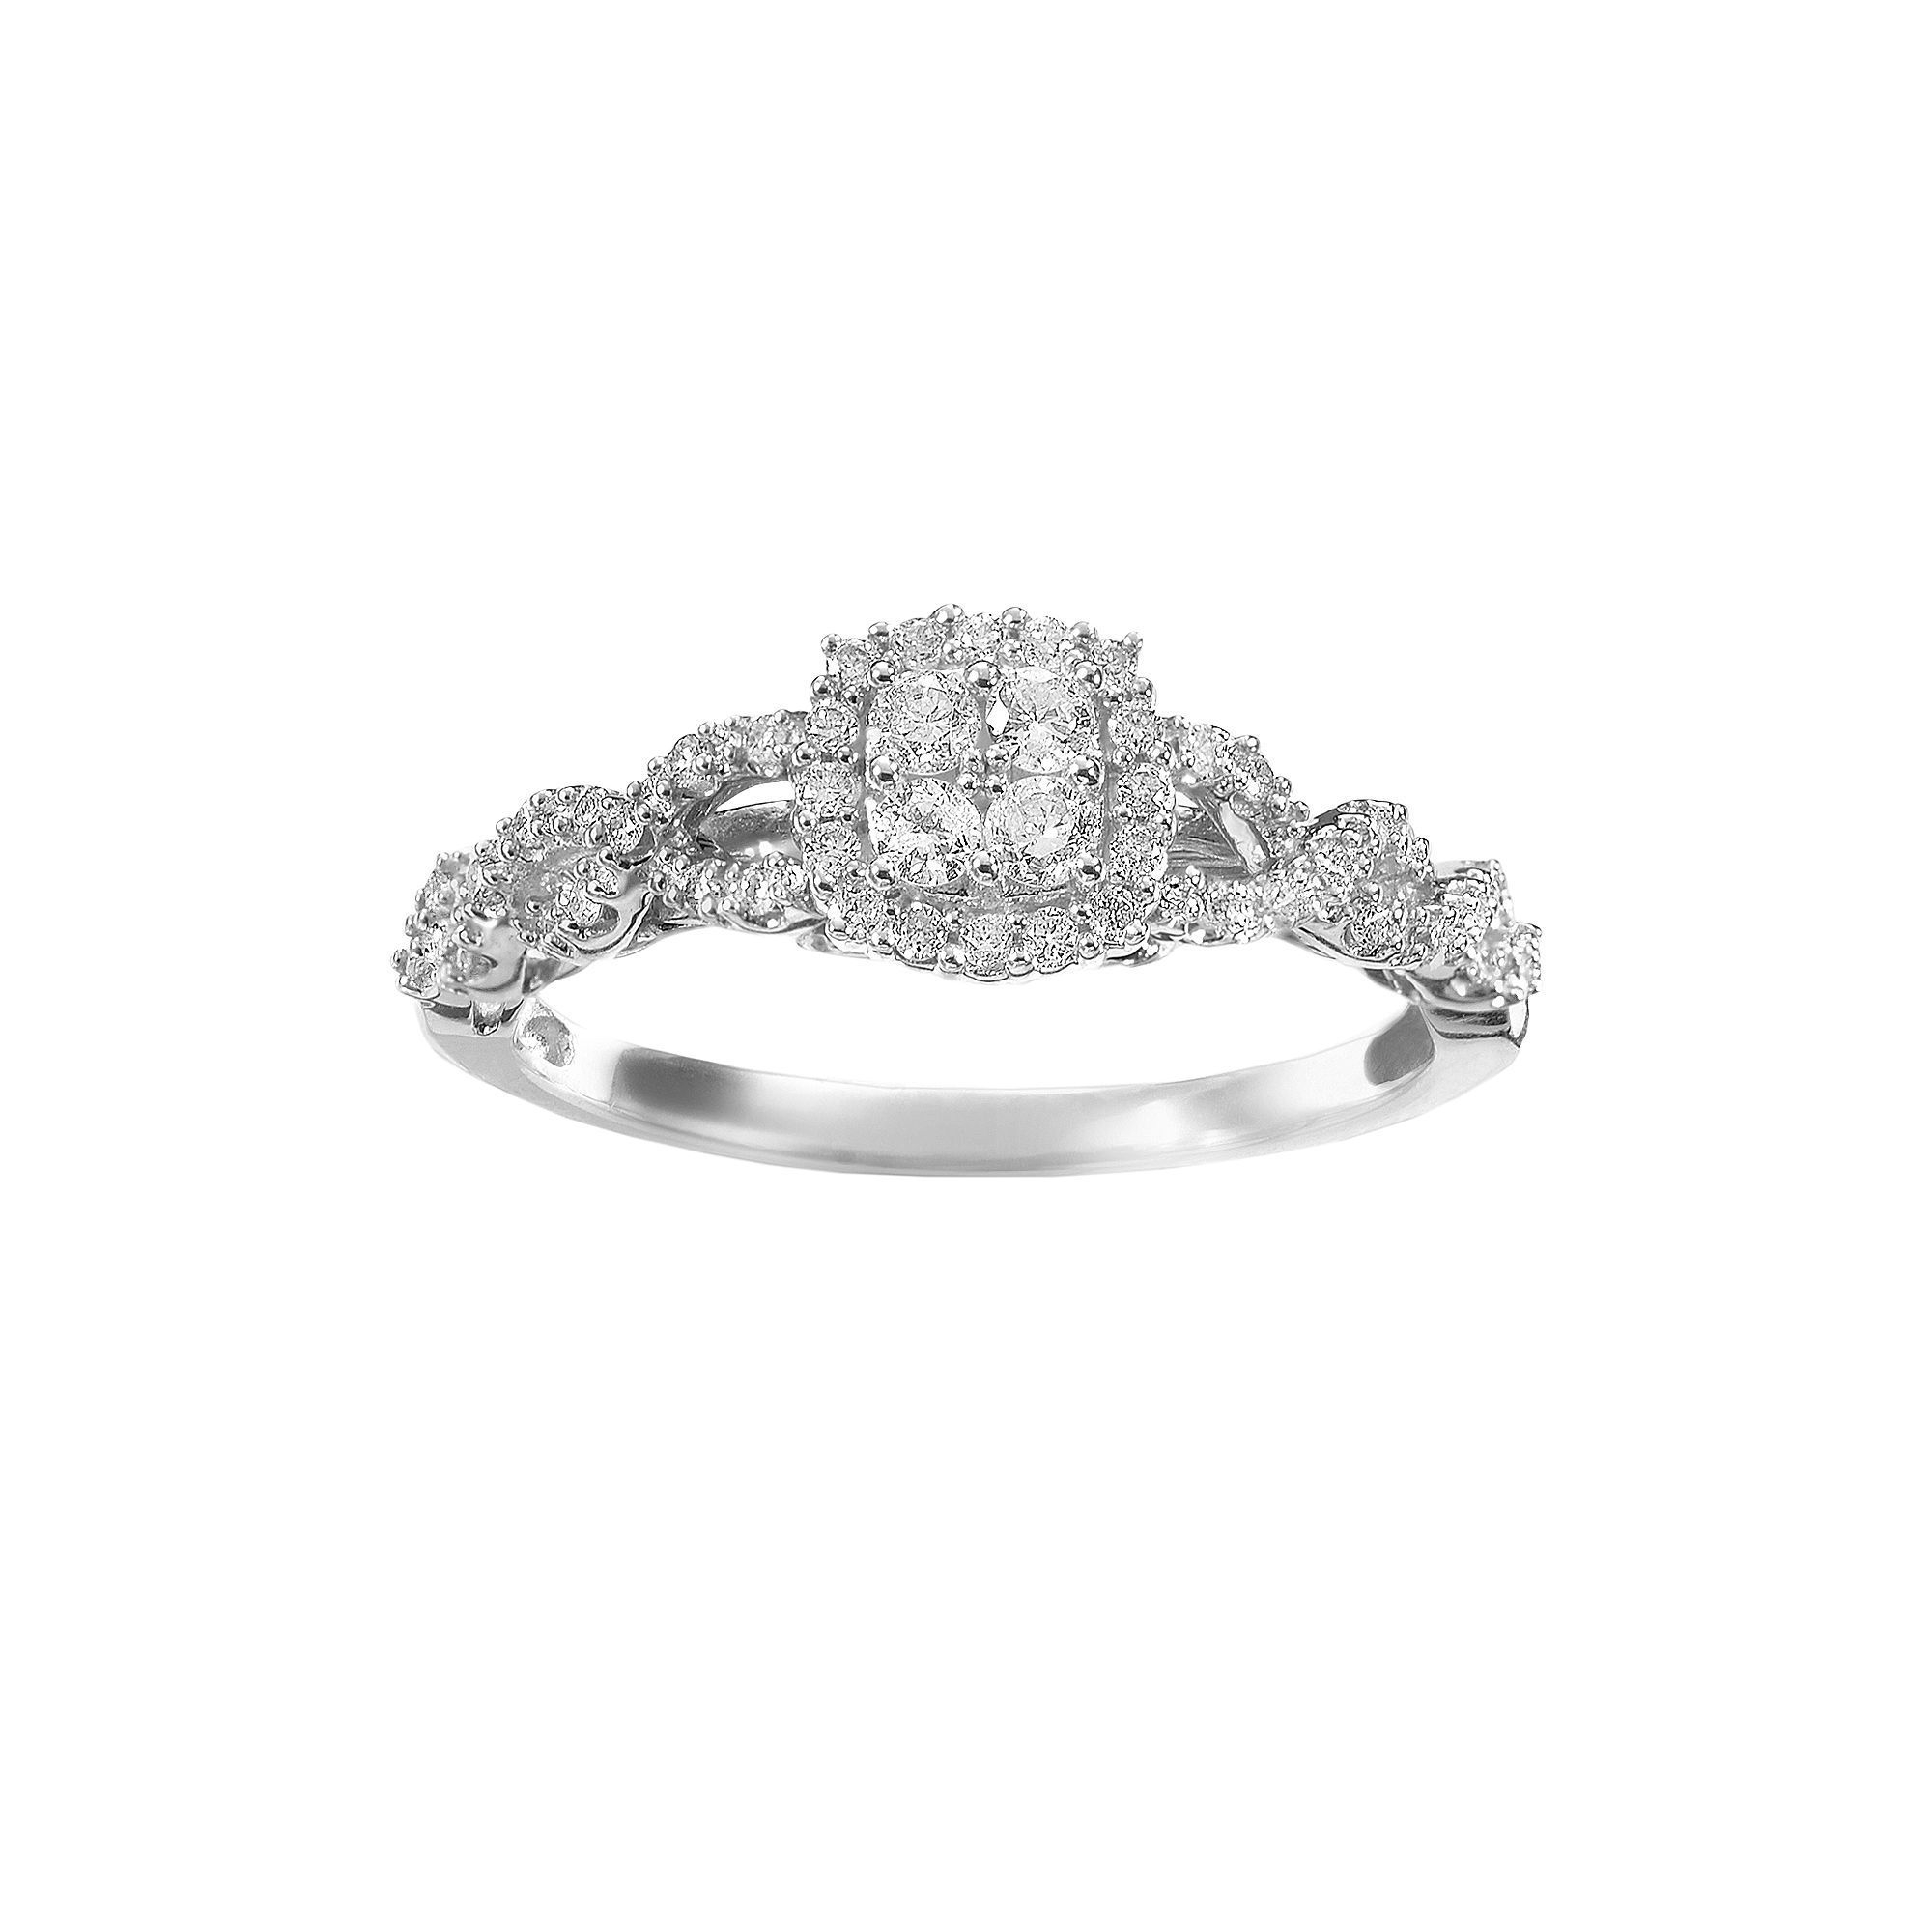 Simply Vera Vera Wang Diamond Twist Frame Engagement Ring In 14K Throughout Most Recently Released Oval Diamond Double Frame Twist Vintage Style Bridal Rings In 14K White Gold (View 12 of 15)